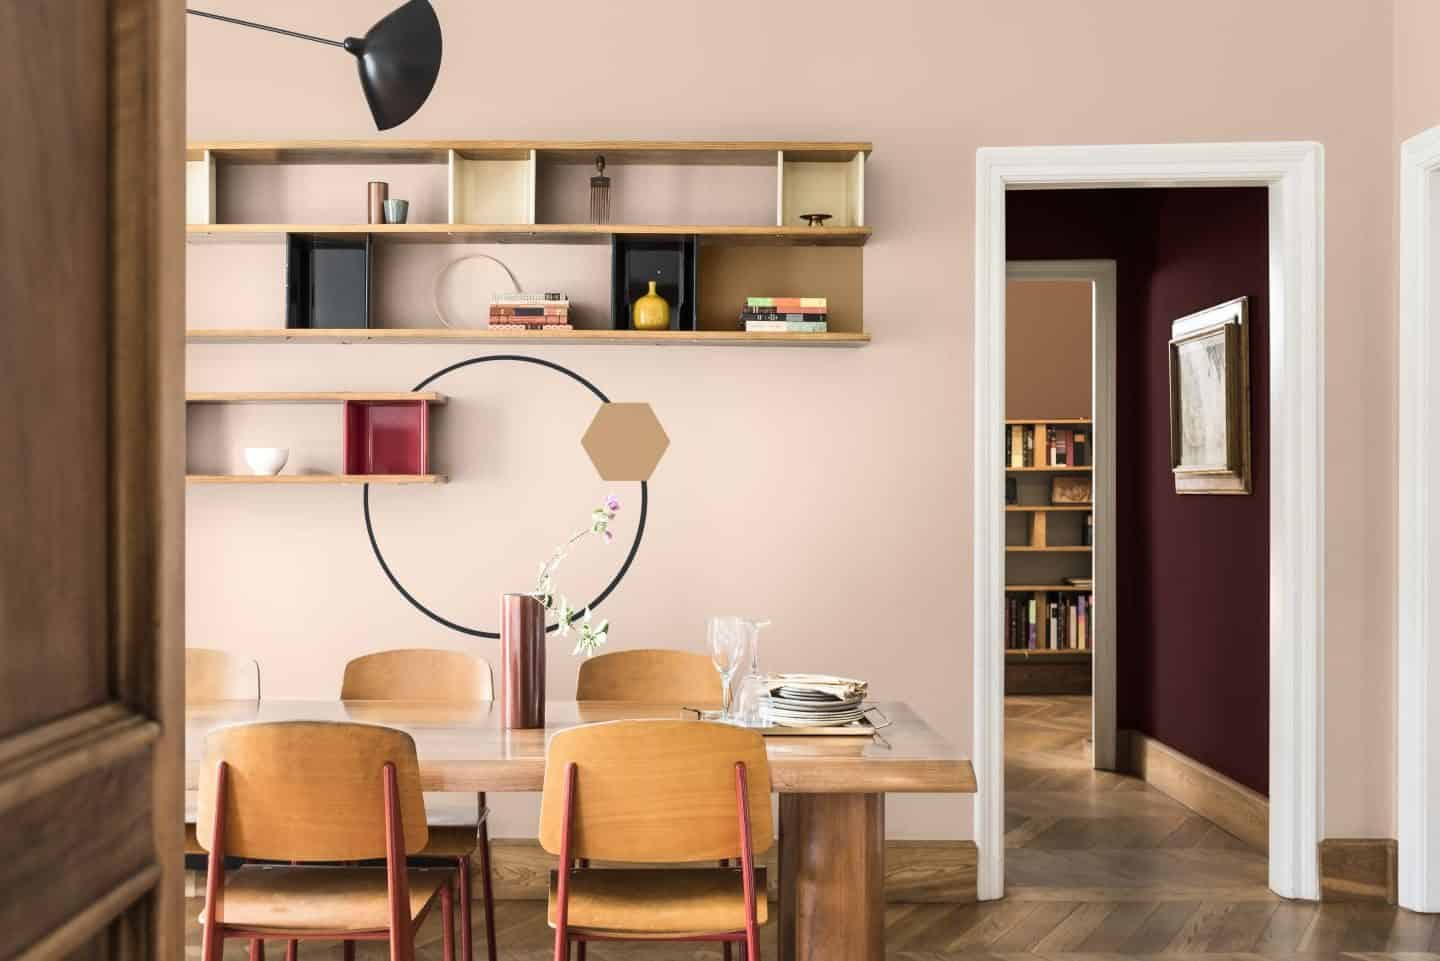 DULUX announces Colour of the Year 2019 - Spiced Honey - THINK PALETTE 3